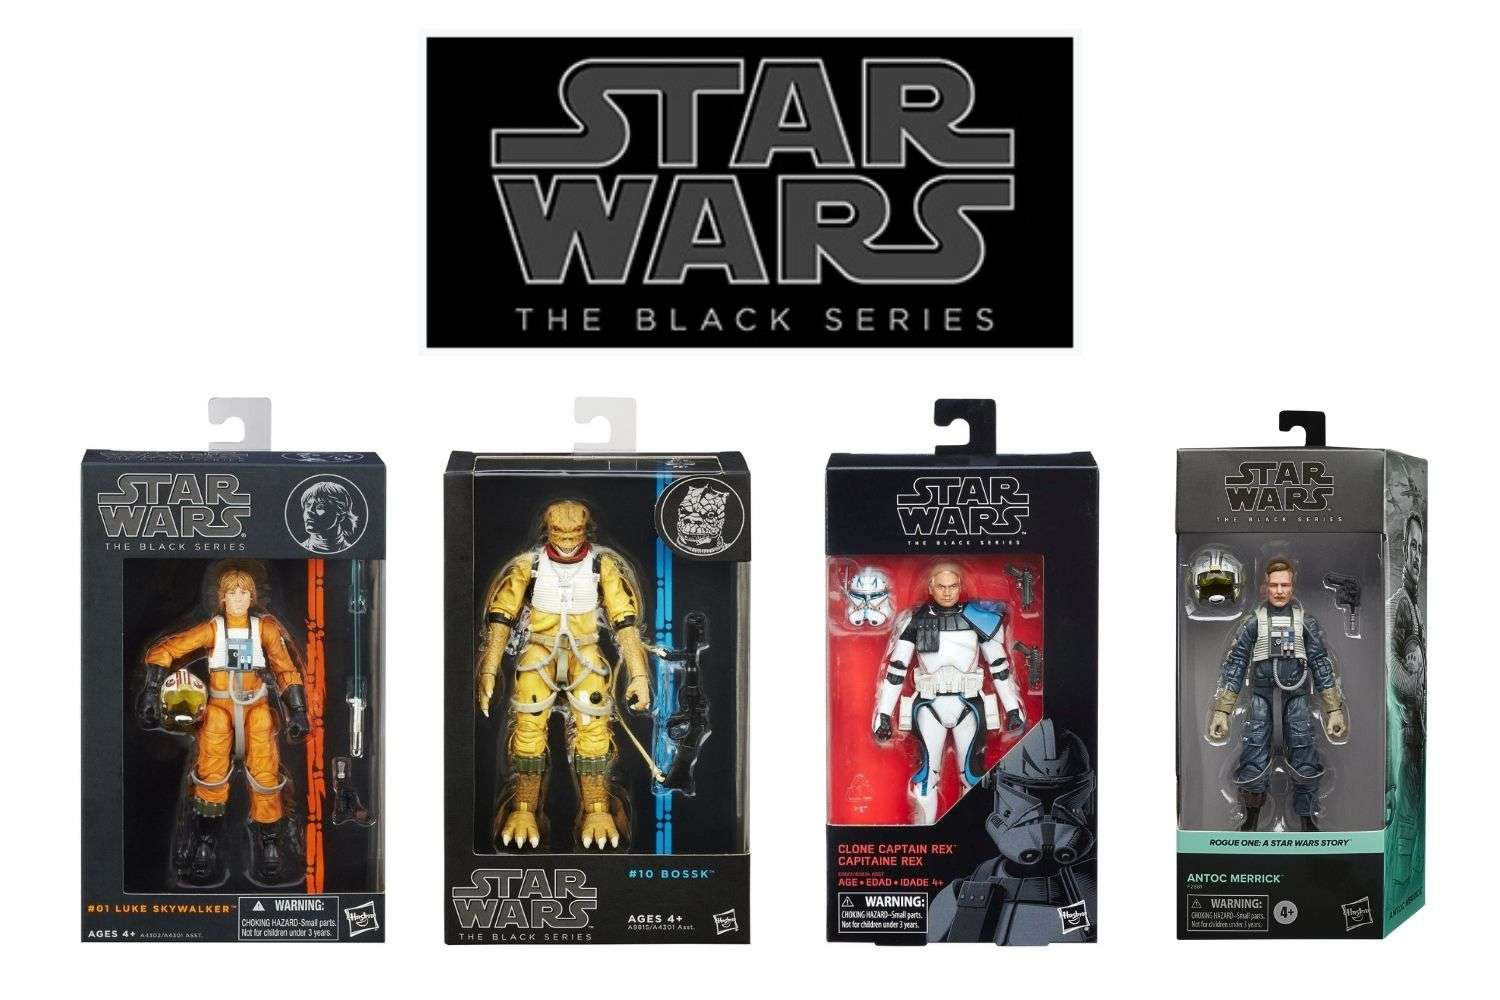 Star Wars The Black Series Visual Guide and Checklist